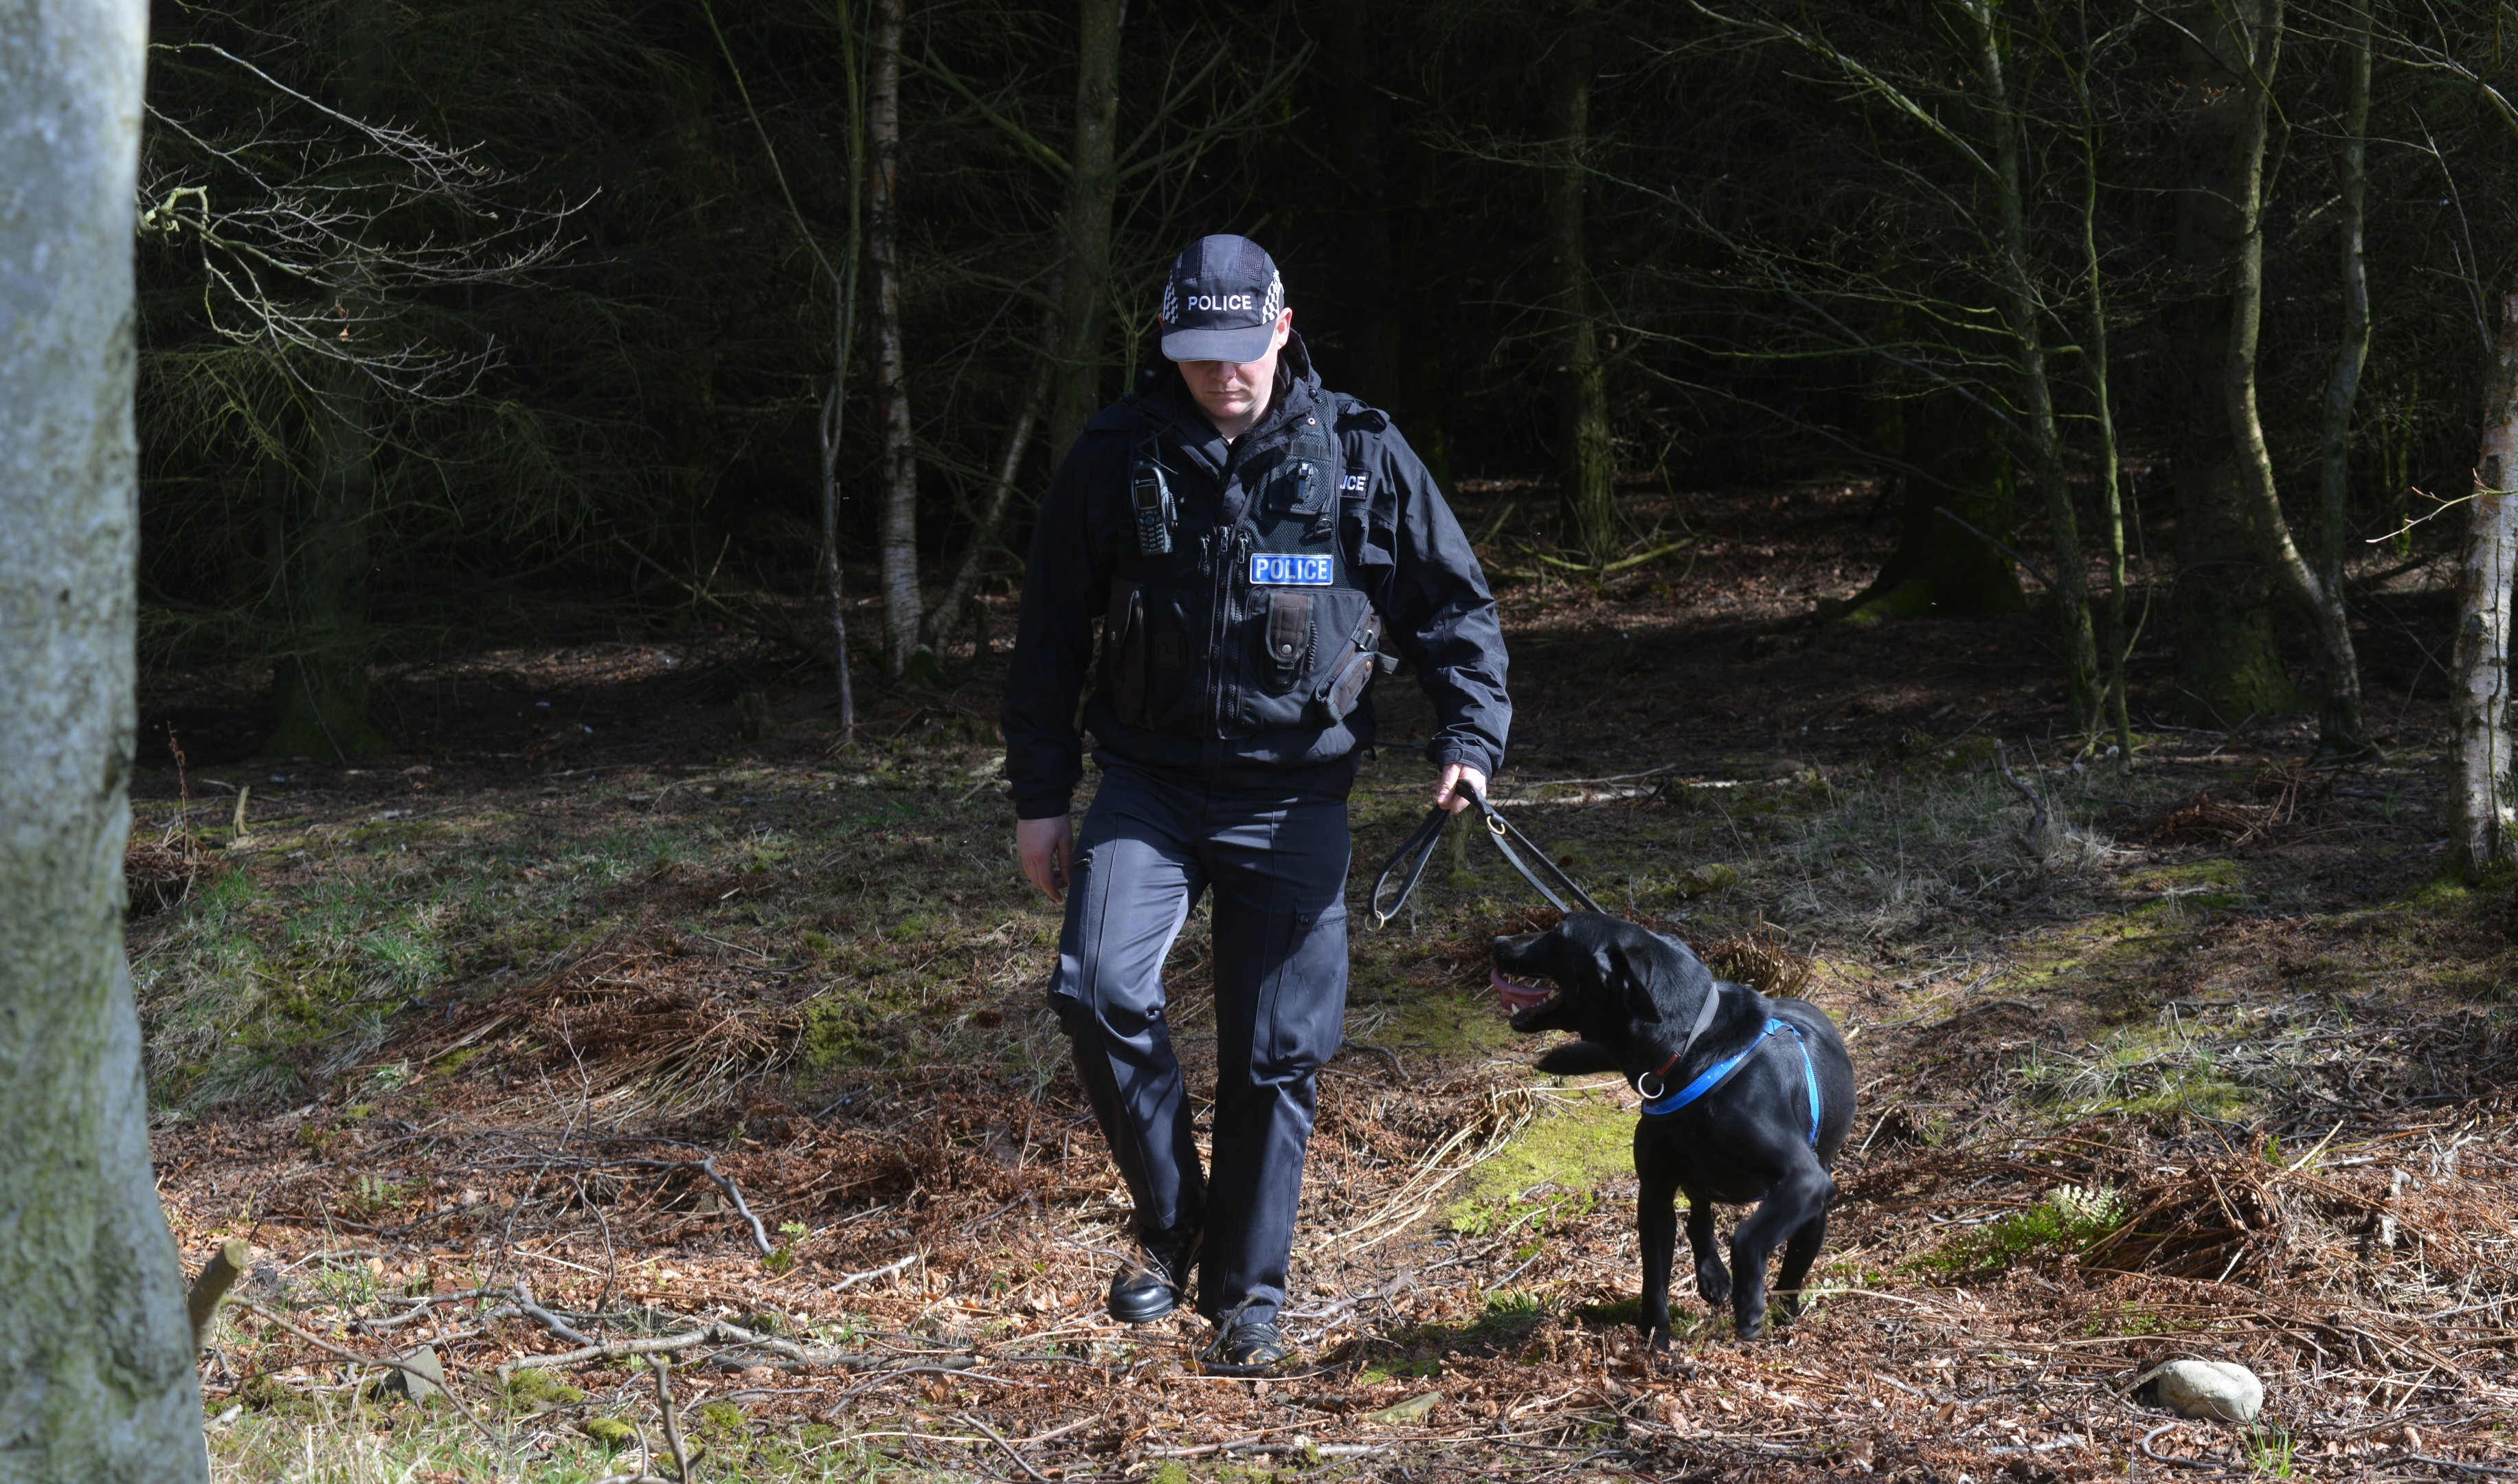 Police combing woodland at Scotlands Secret Bunker near Anstruther in Fife following up a new lead in the search for Allan Bryant Jnr.